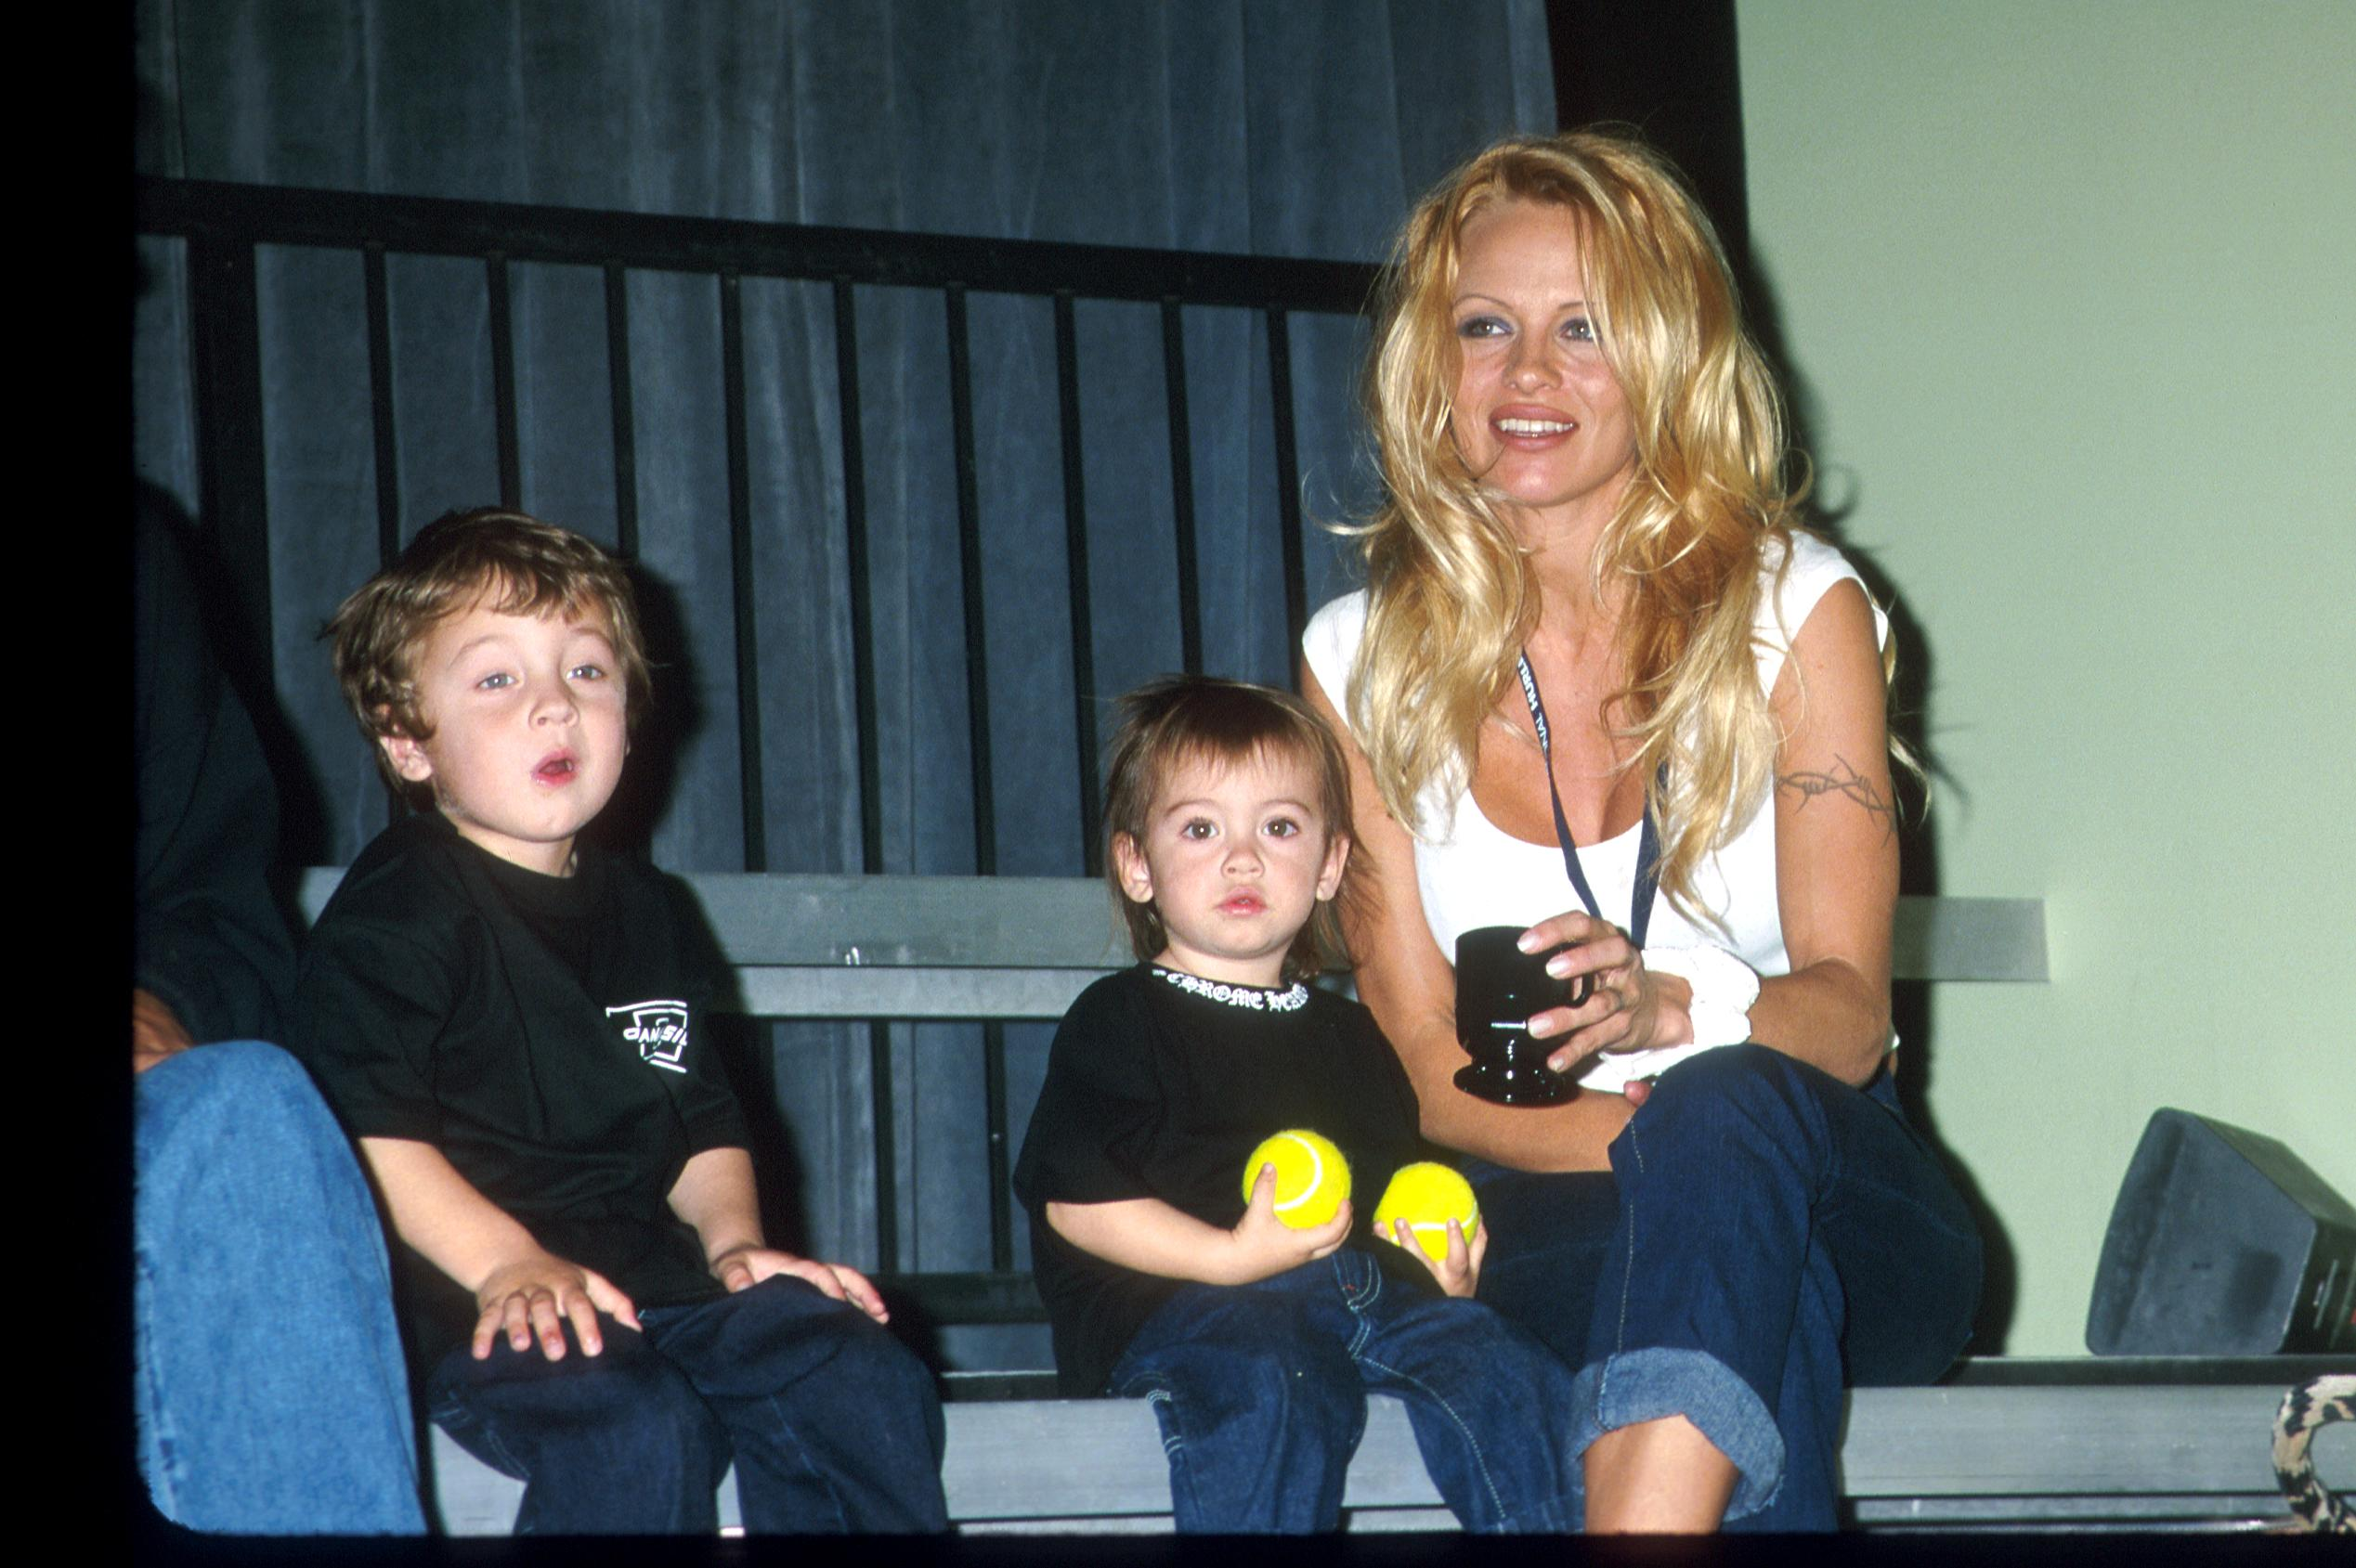 Pamela Anderson Lee with her kids Brandon & Dylan attending the Mtv's BALL2K a new interactive, futuristic game based on the skills of baseball | Photo:GettyImages